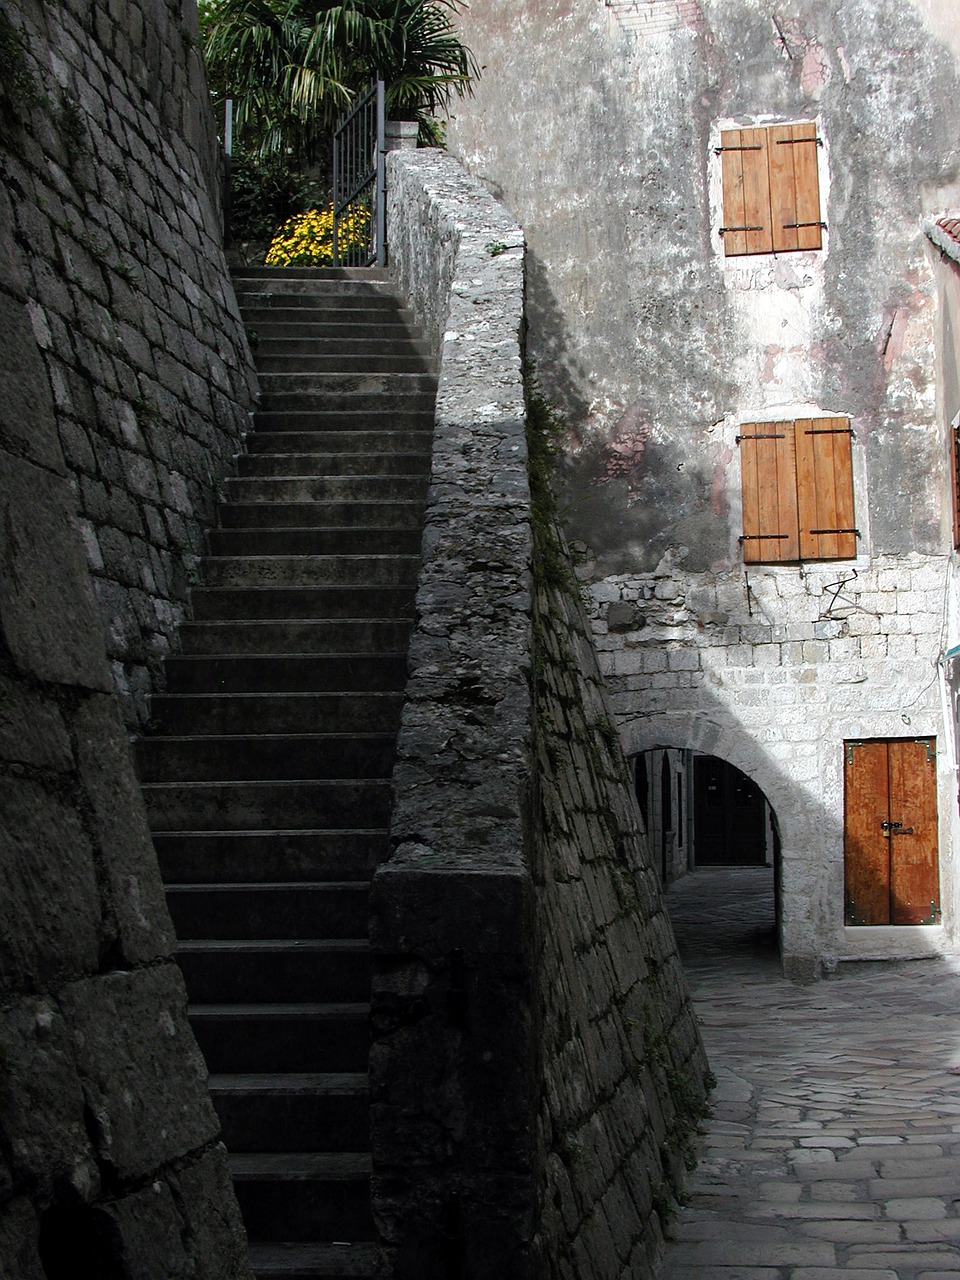 The Old City walls are a must see in Kotor